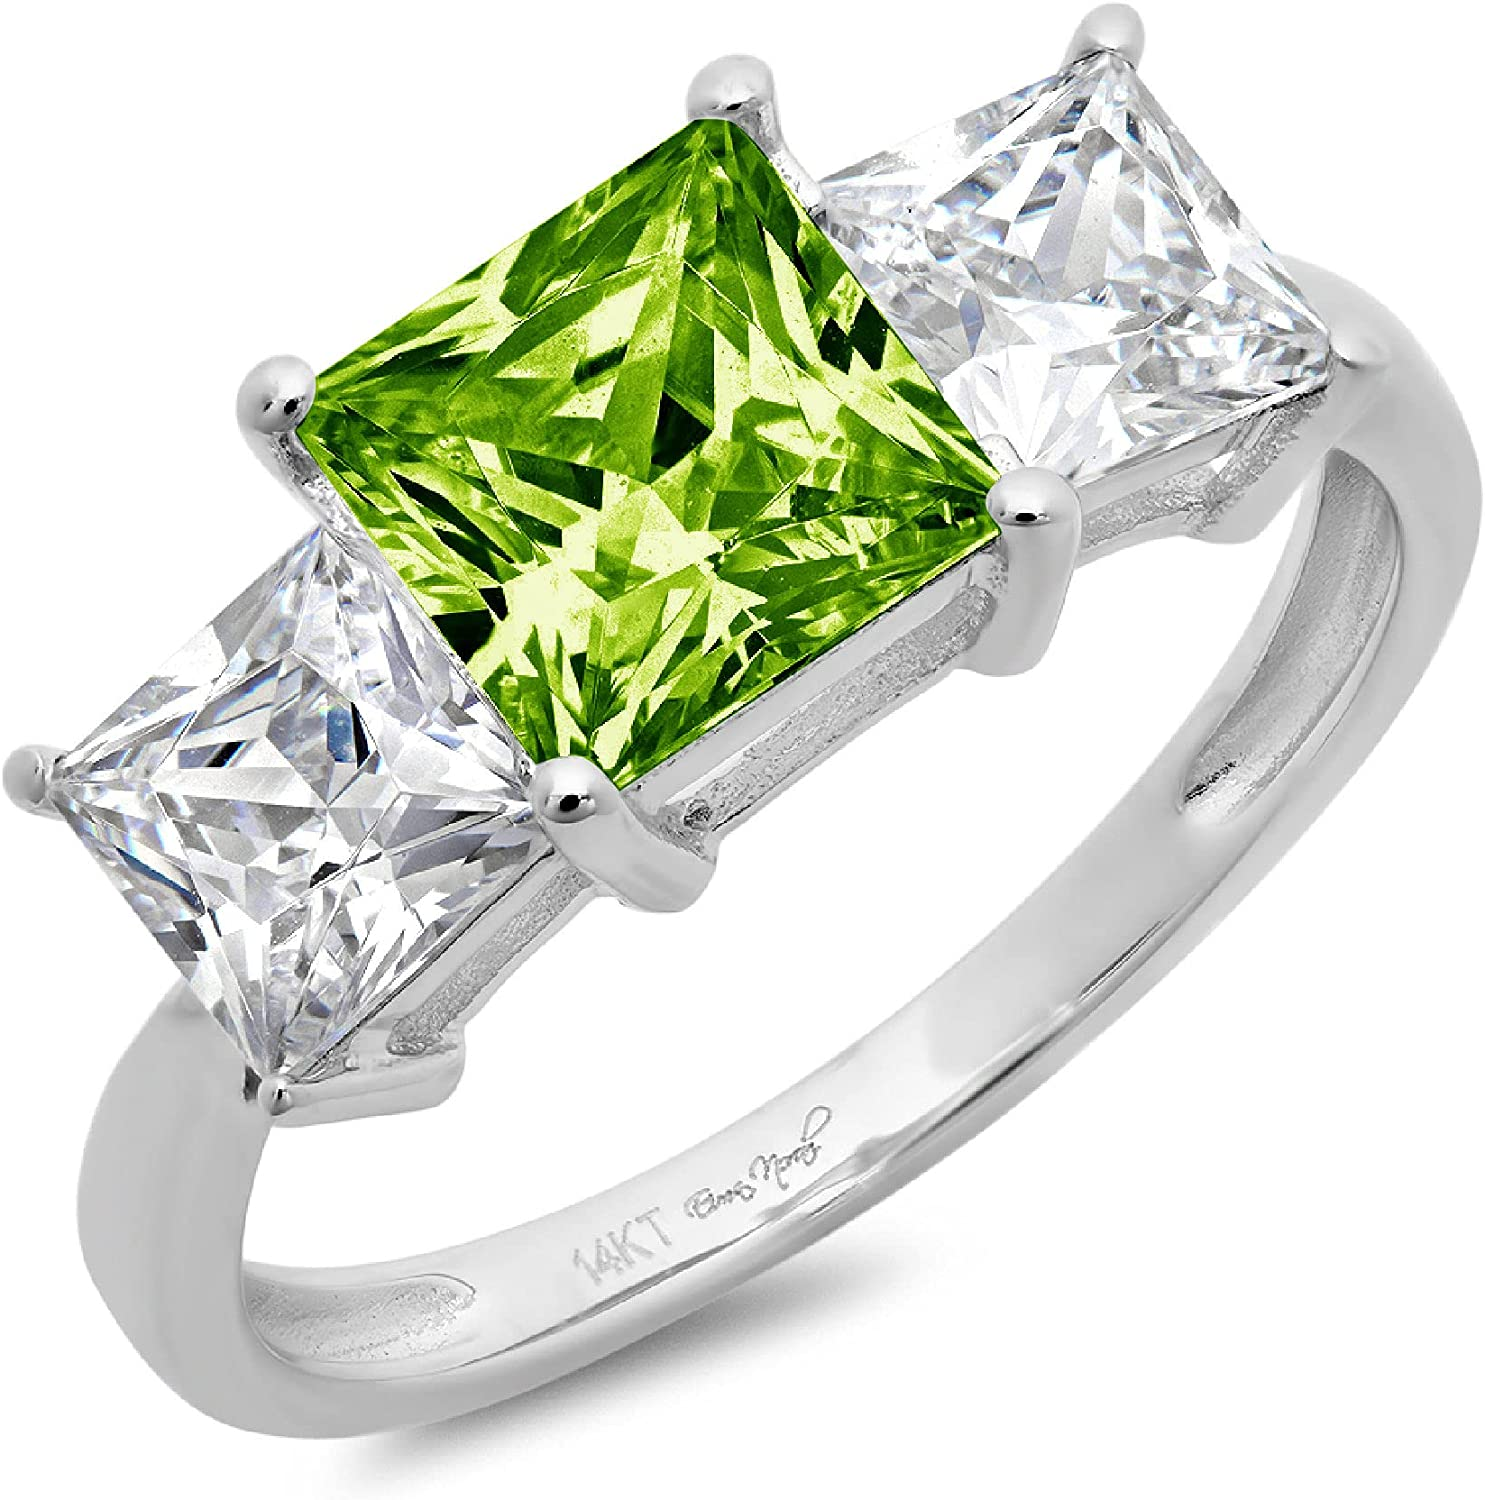 3.0ct Brilliant Princess Cut 3 Stone Solitaire Accent Genuine Flawless Natural Green Peridot Gemstone Engagement Promise Statement Anniversary Bridal Wedding Ring Solid 18K White Gold